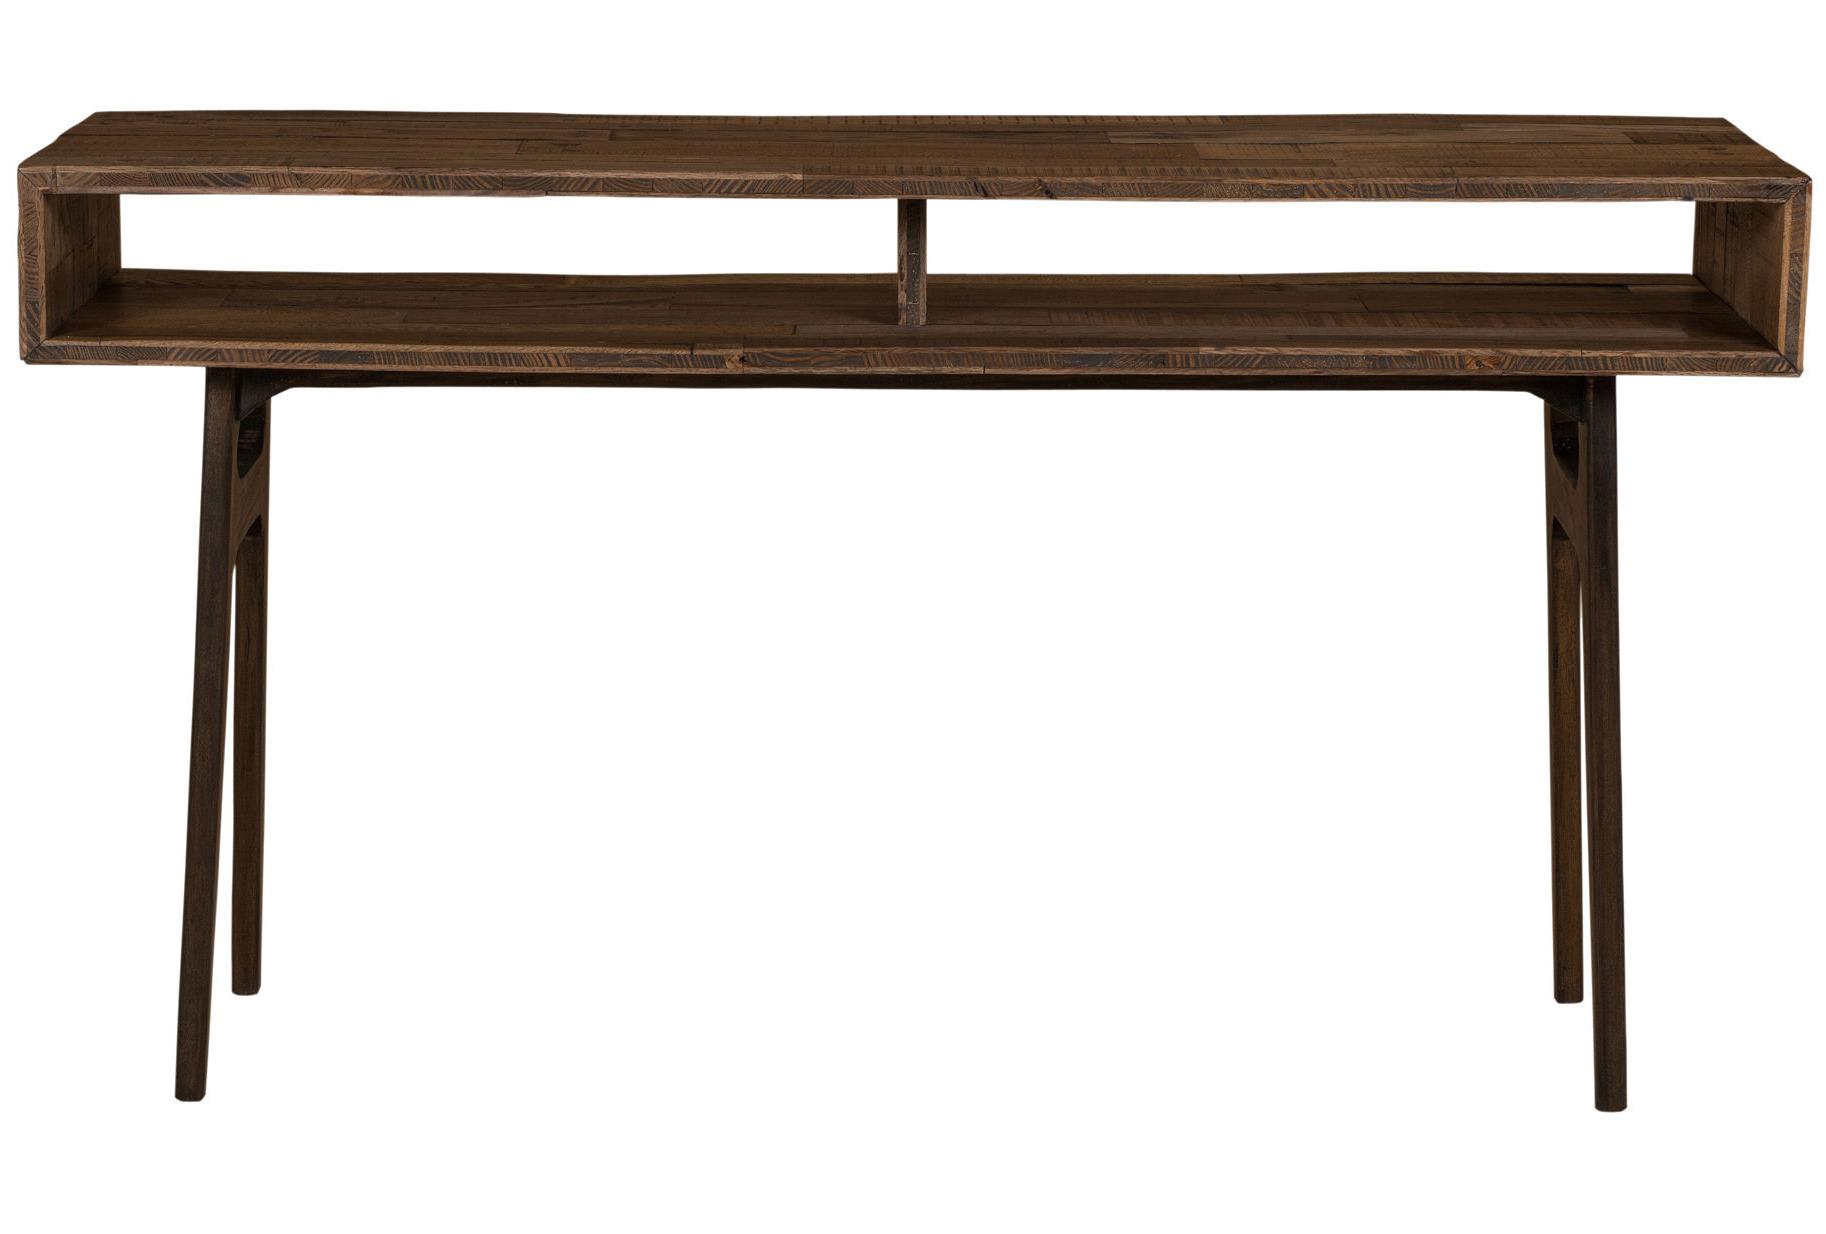 Four Hands Wesson Nico Console Table - Item Number: UWES-013